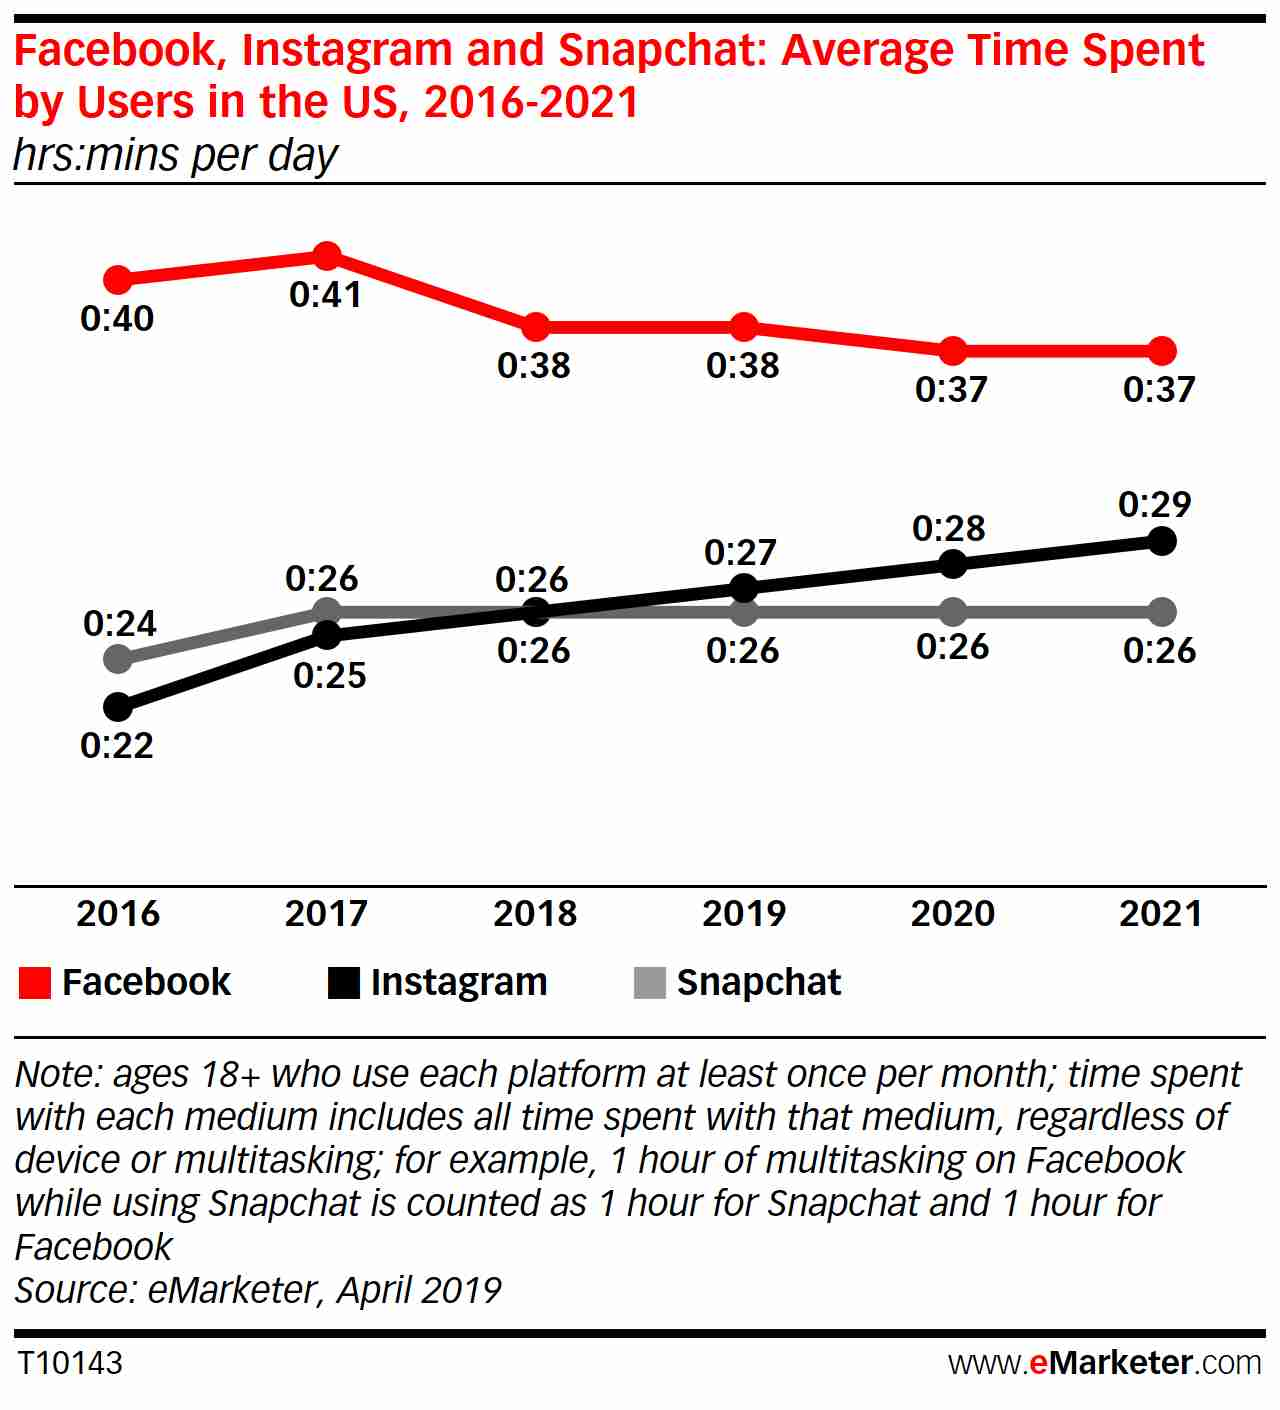 2021 marketing trends indicates people spend more time on Instagram.